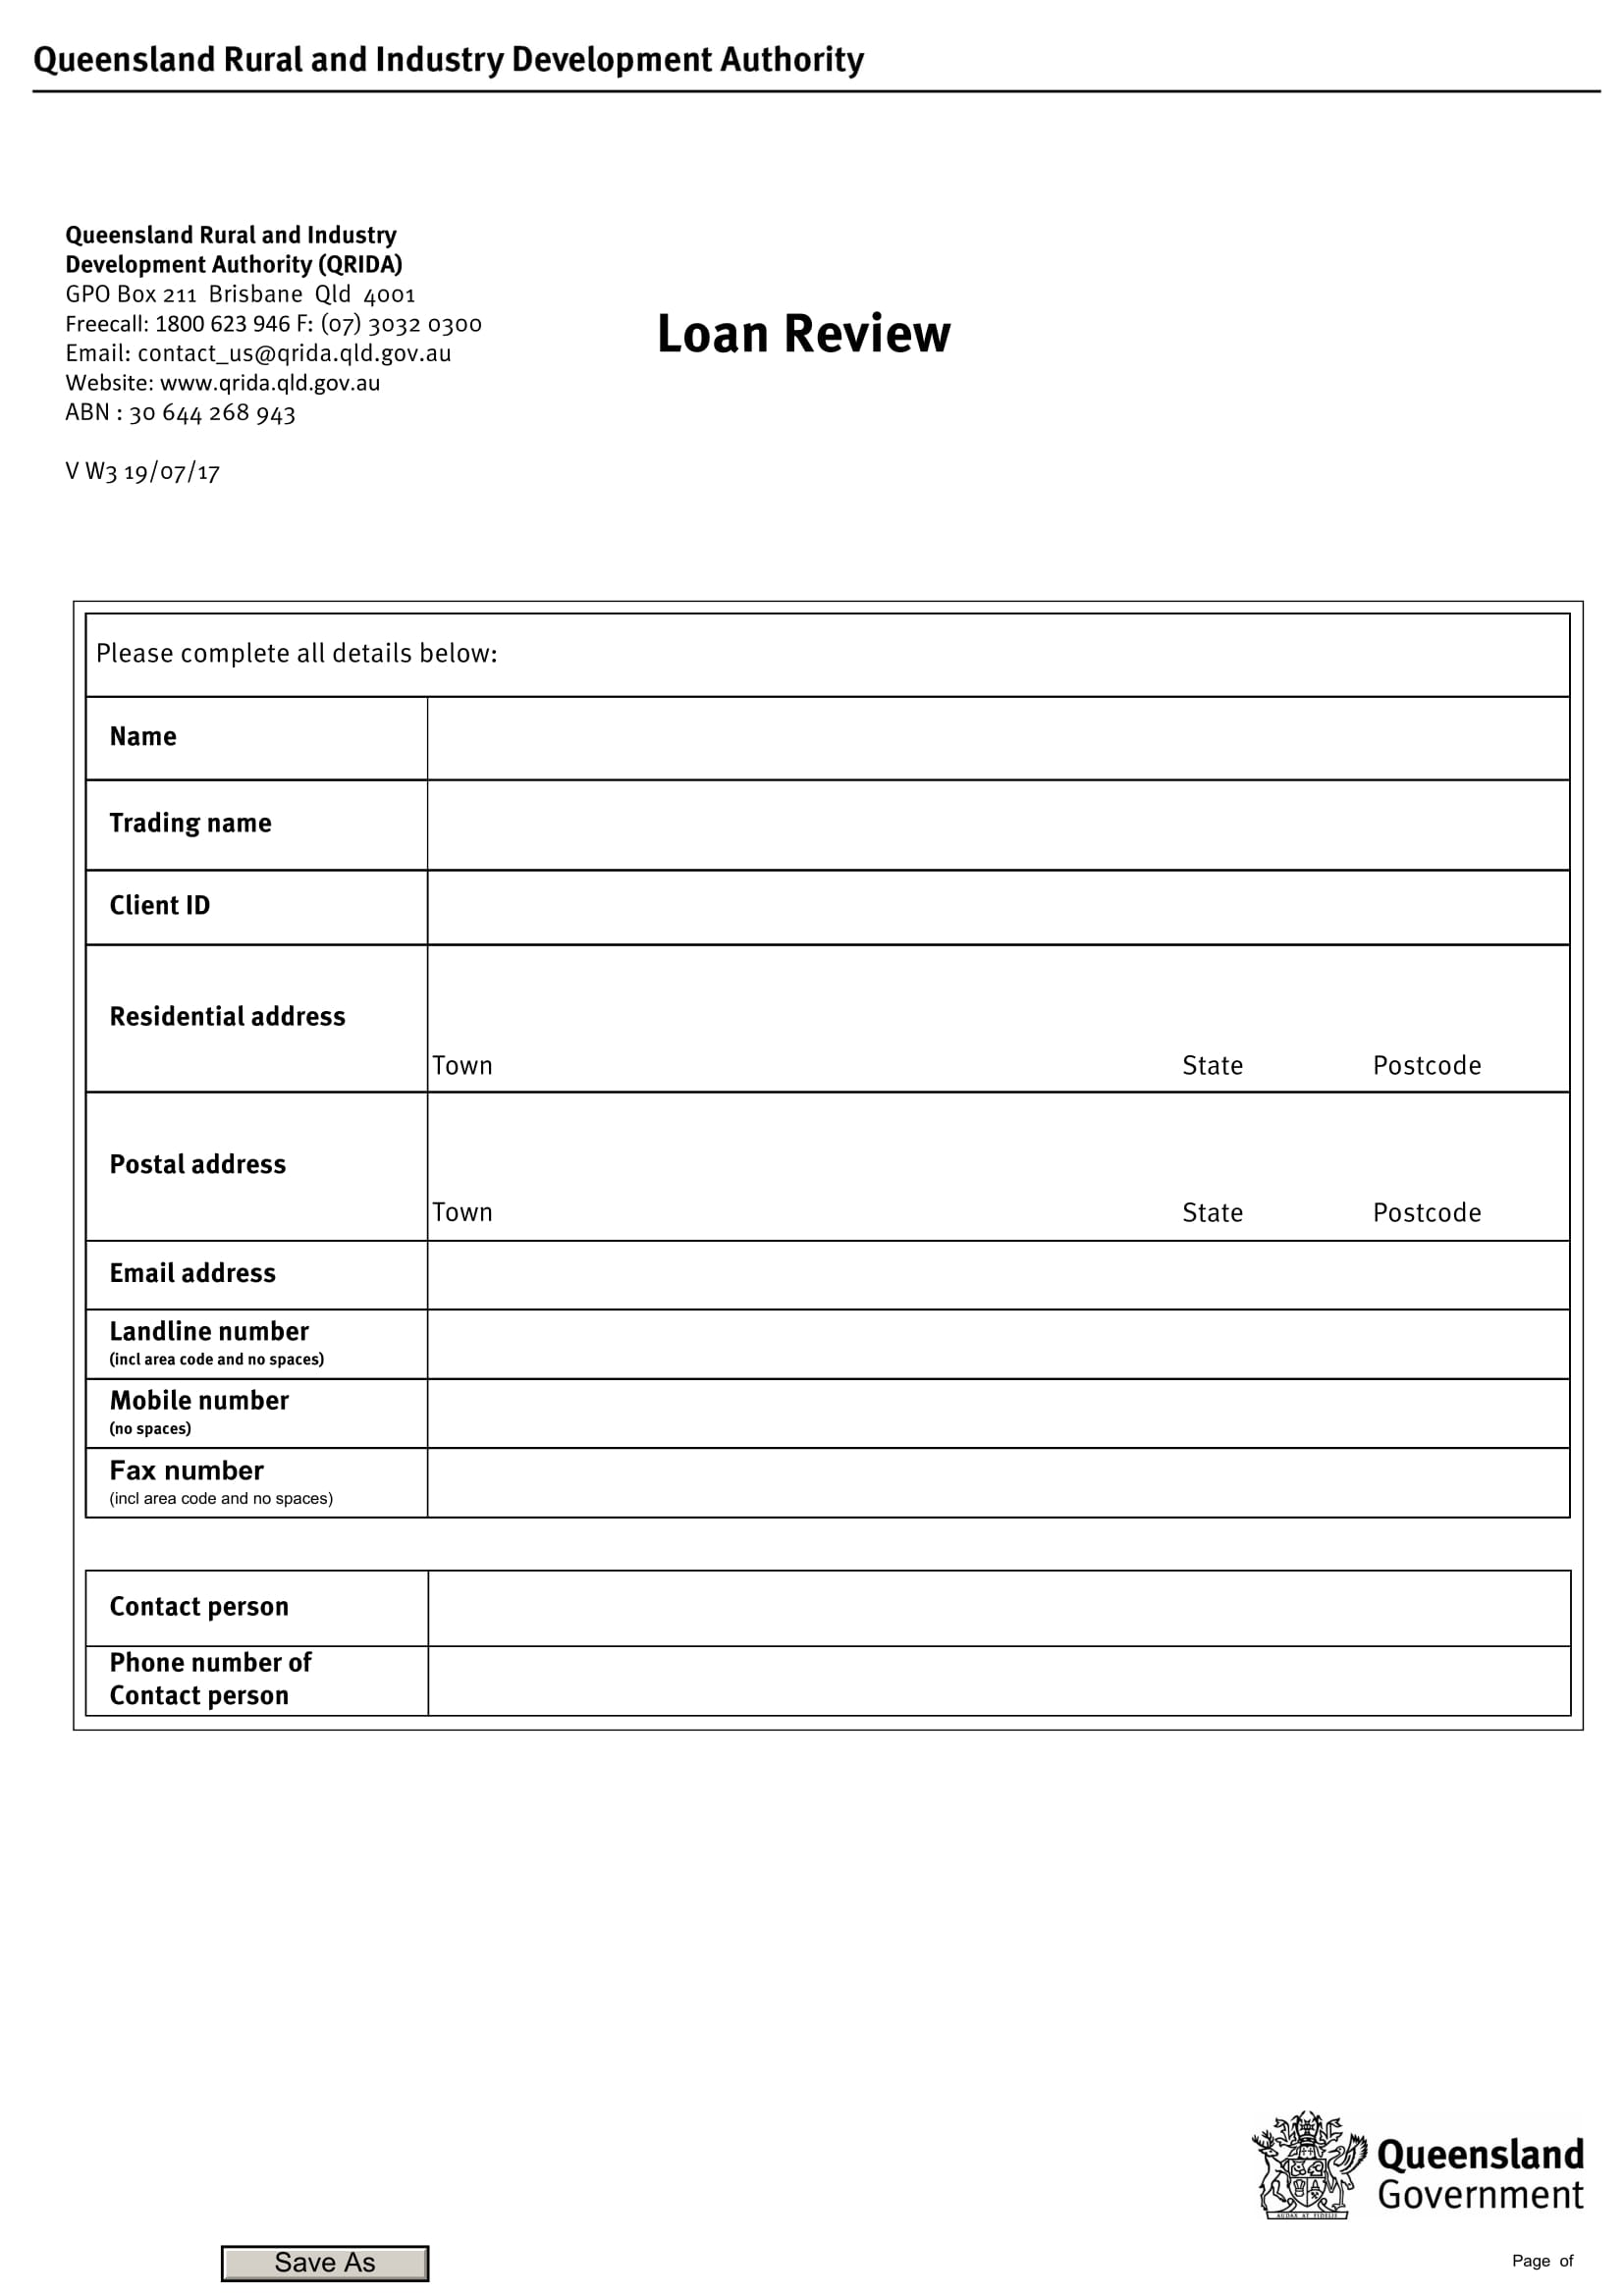 loan review form sample 1